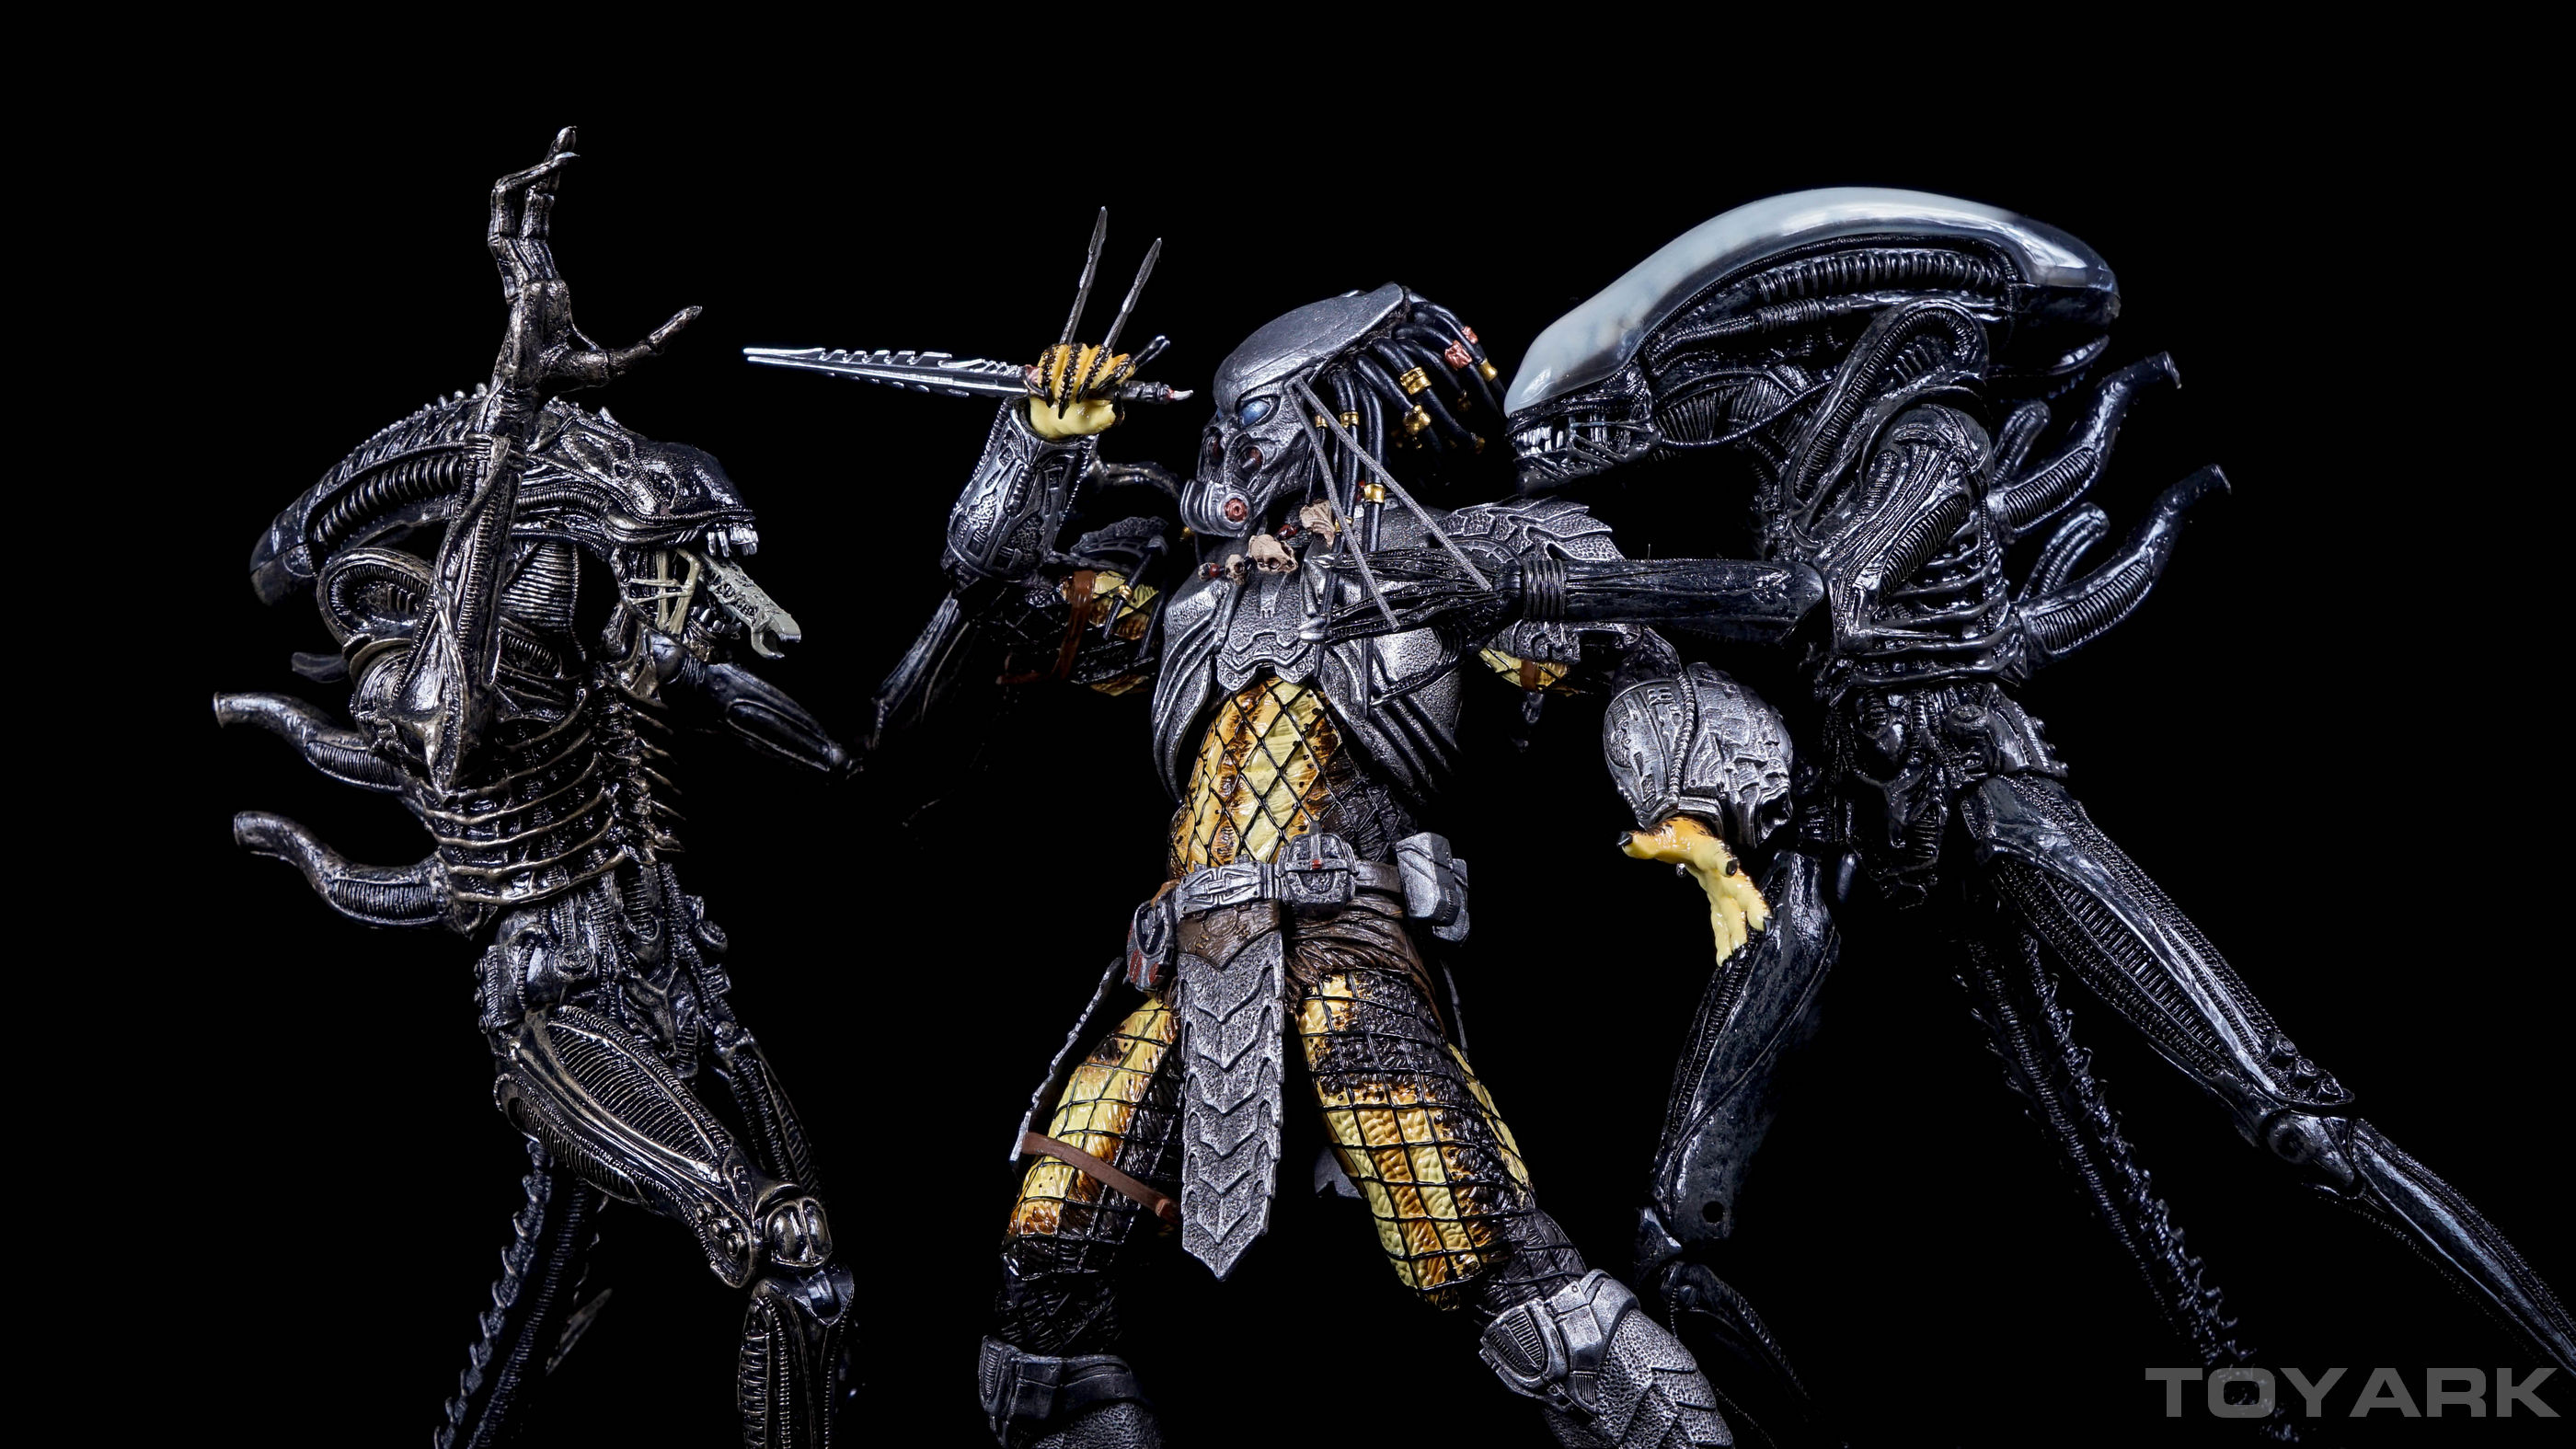 http://news.toyark.com/wp-content/uploads/sites/4/2015/12/NECA-AvP-Series-14-Predators-008.jpg